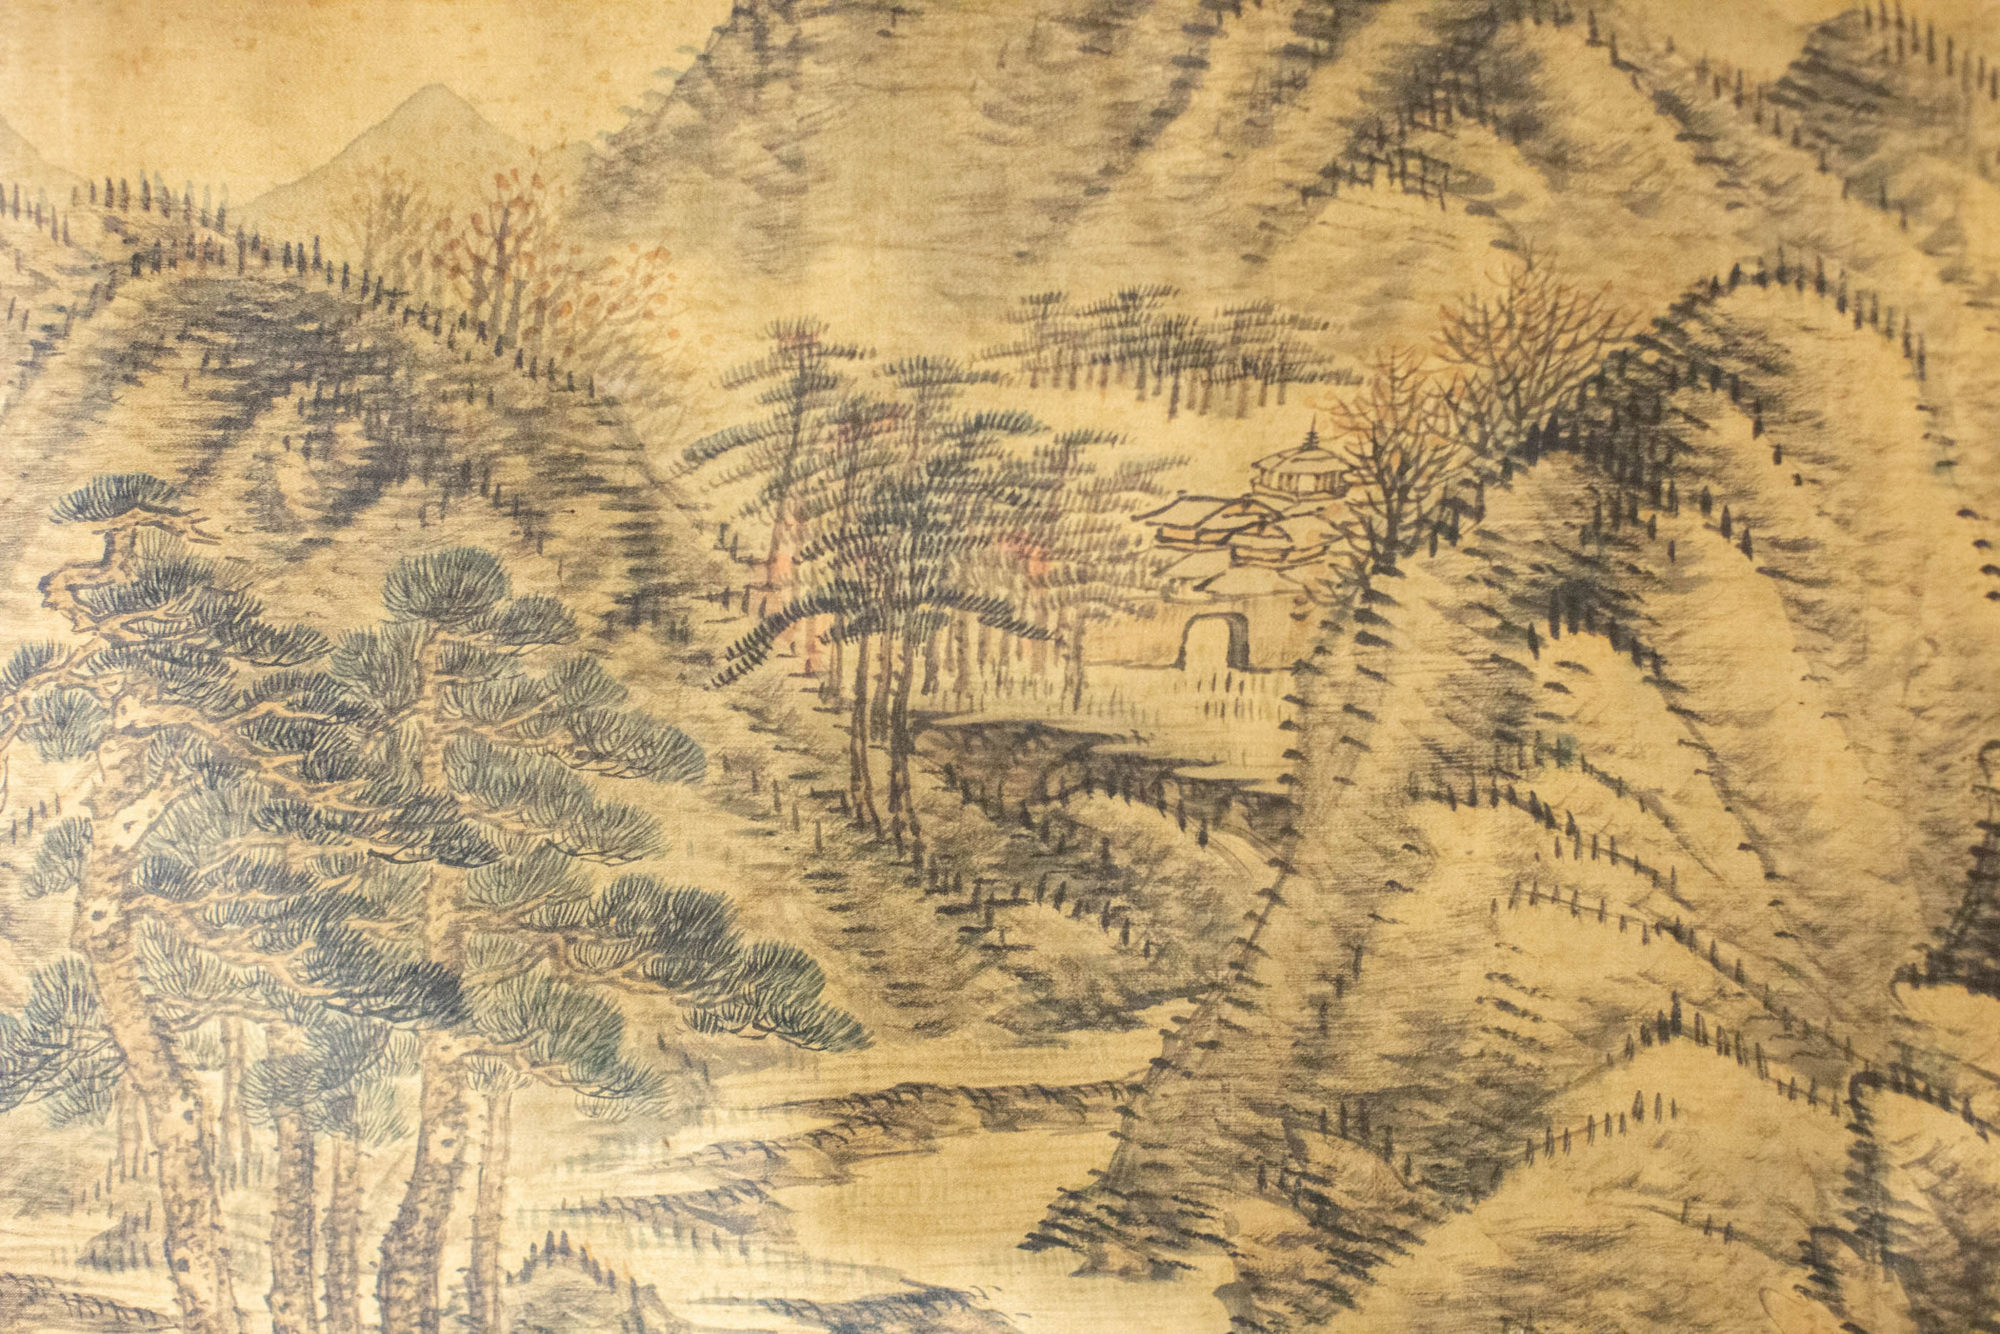 Chinese Ink Painting of Mountain Landscape